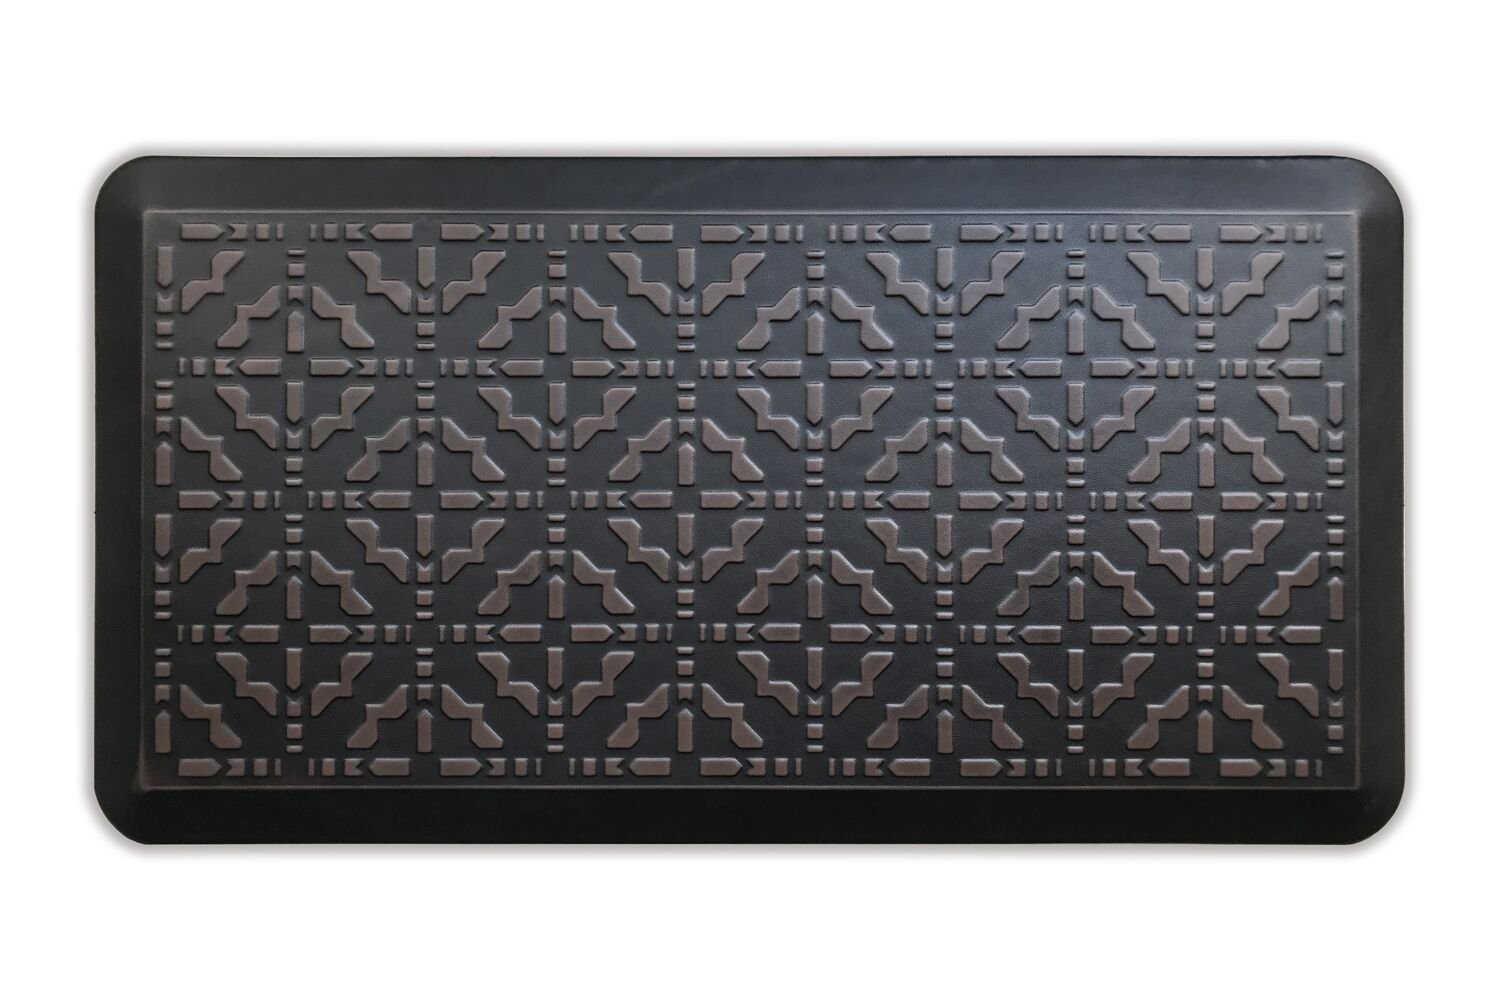 Butterfly Kitchen Mat Anti Fatigue Comfort Floor Mats - Perfect For kitchen and Standing Desks, Non-Toxic, Highest Quality Material, Waterproof, 20 x 39 inches, Dark.Antique by Butterfly